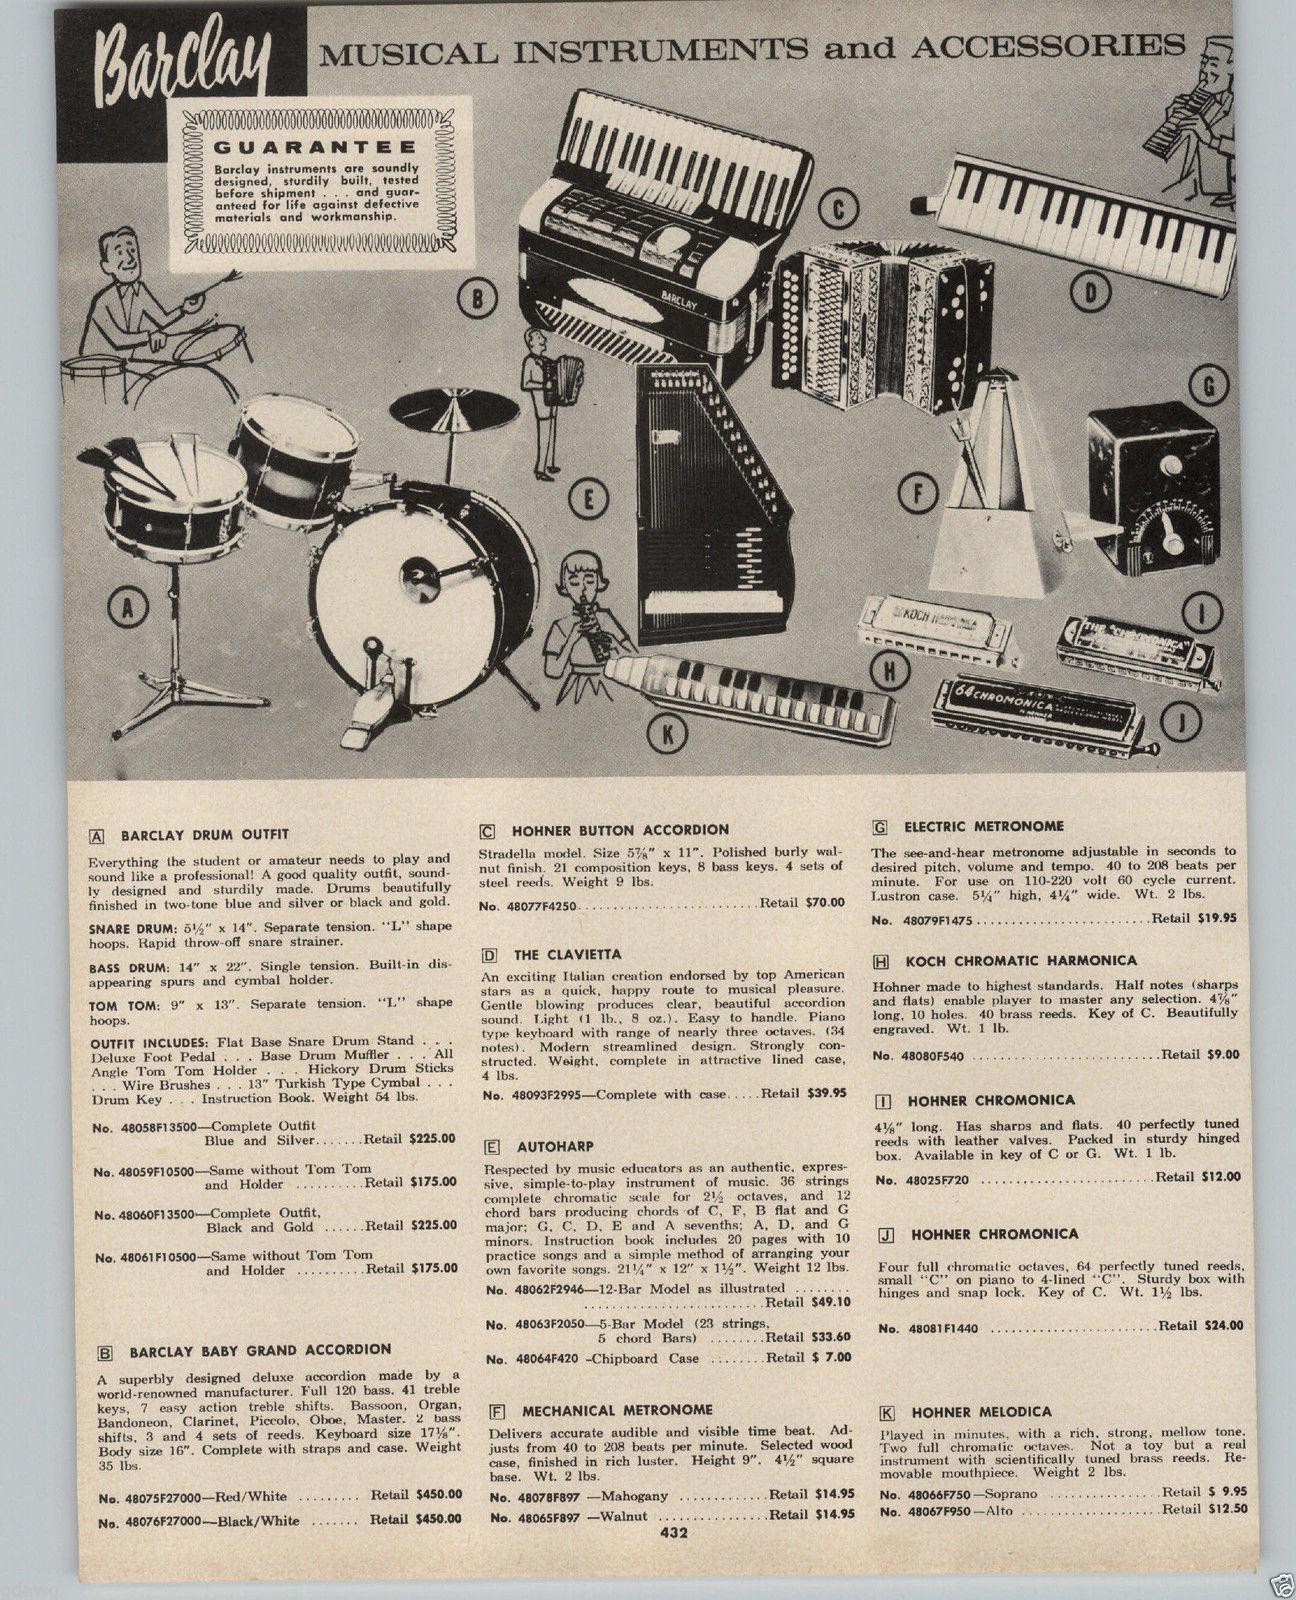 Barclay drums and baby grand accordion advertisement